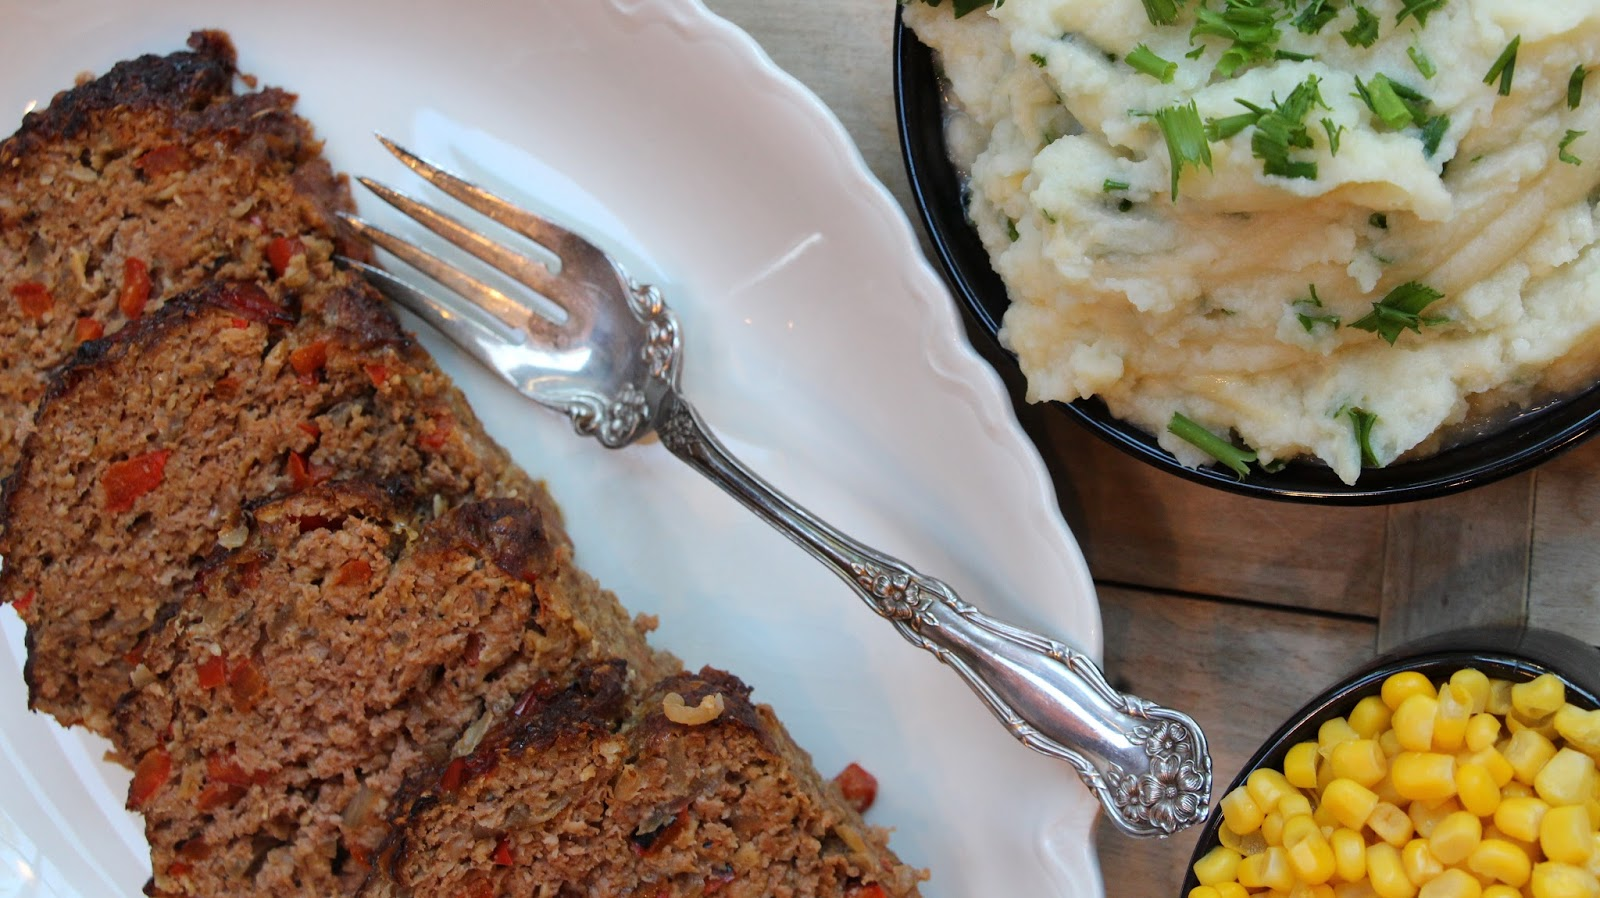 The Thrifty Kitchen Meatloaf Recipe